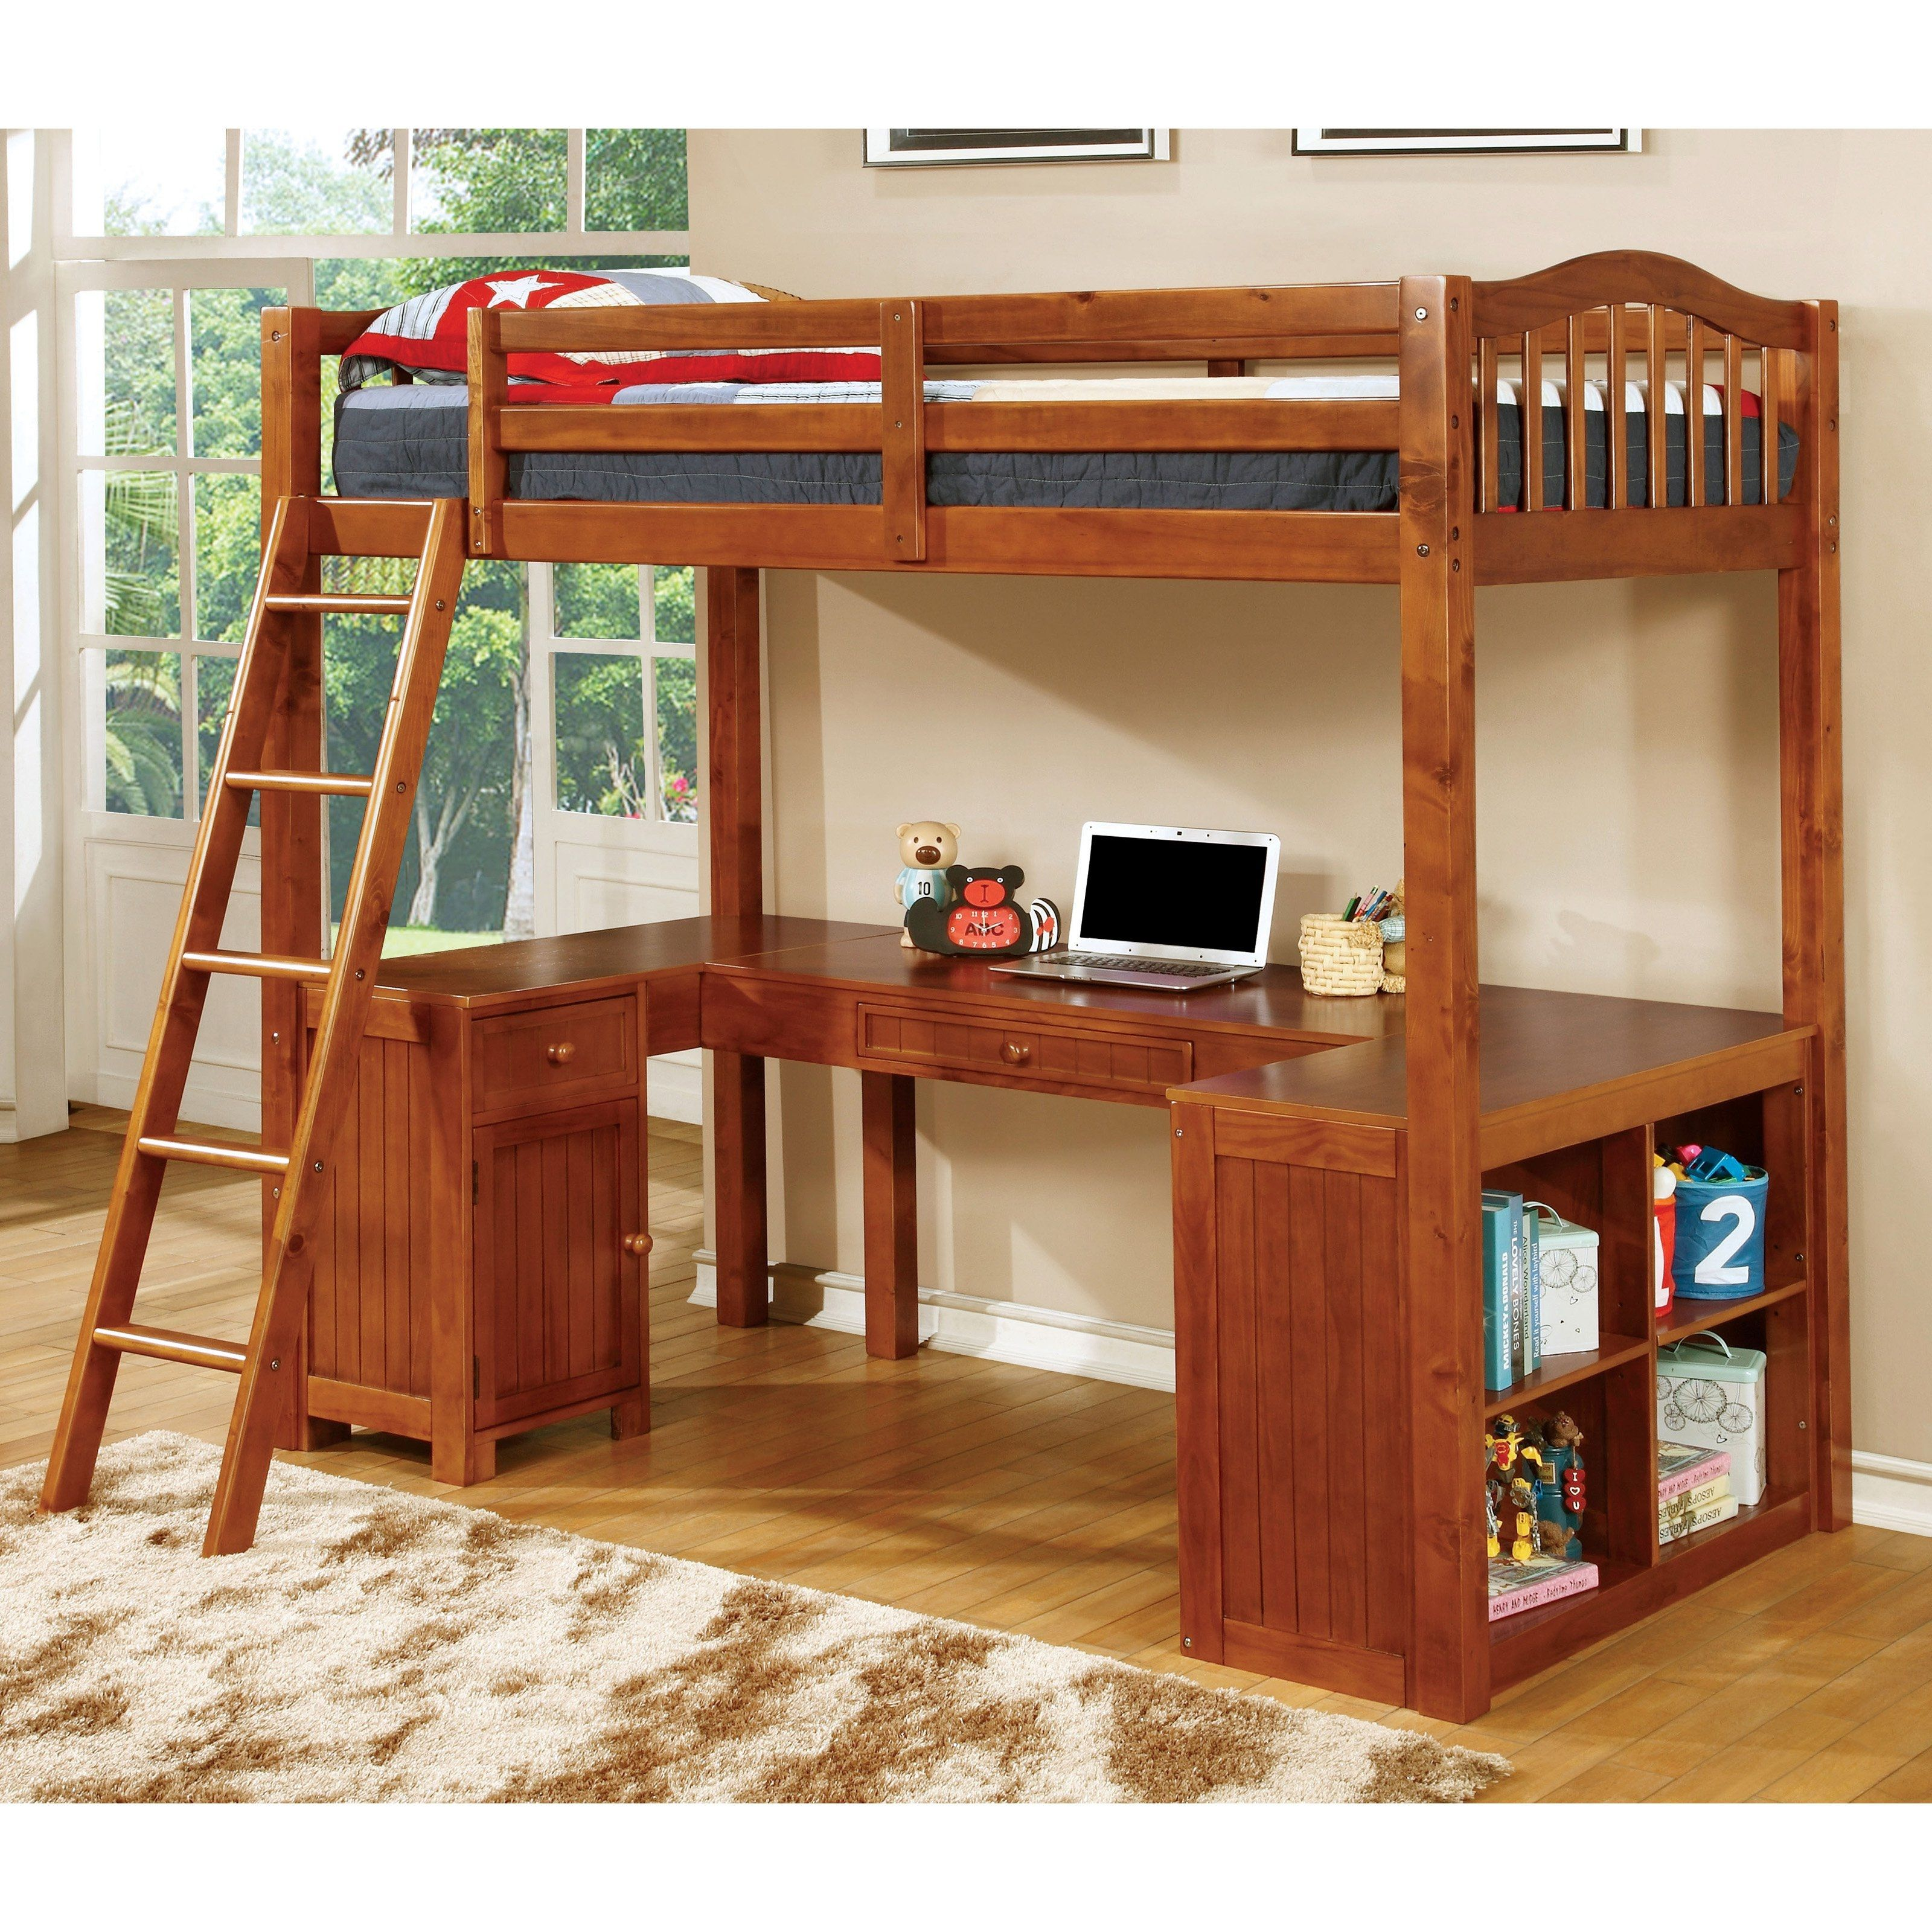 Twin wood loft bunk bed with computer desk workstation